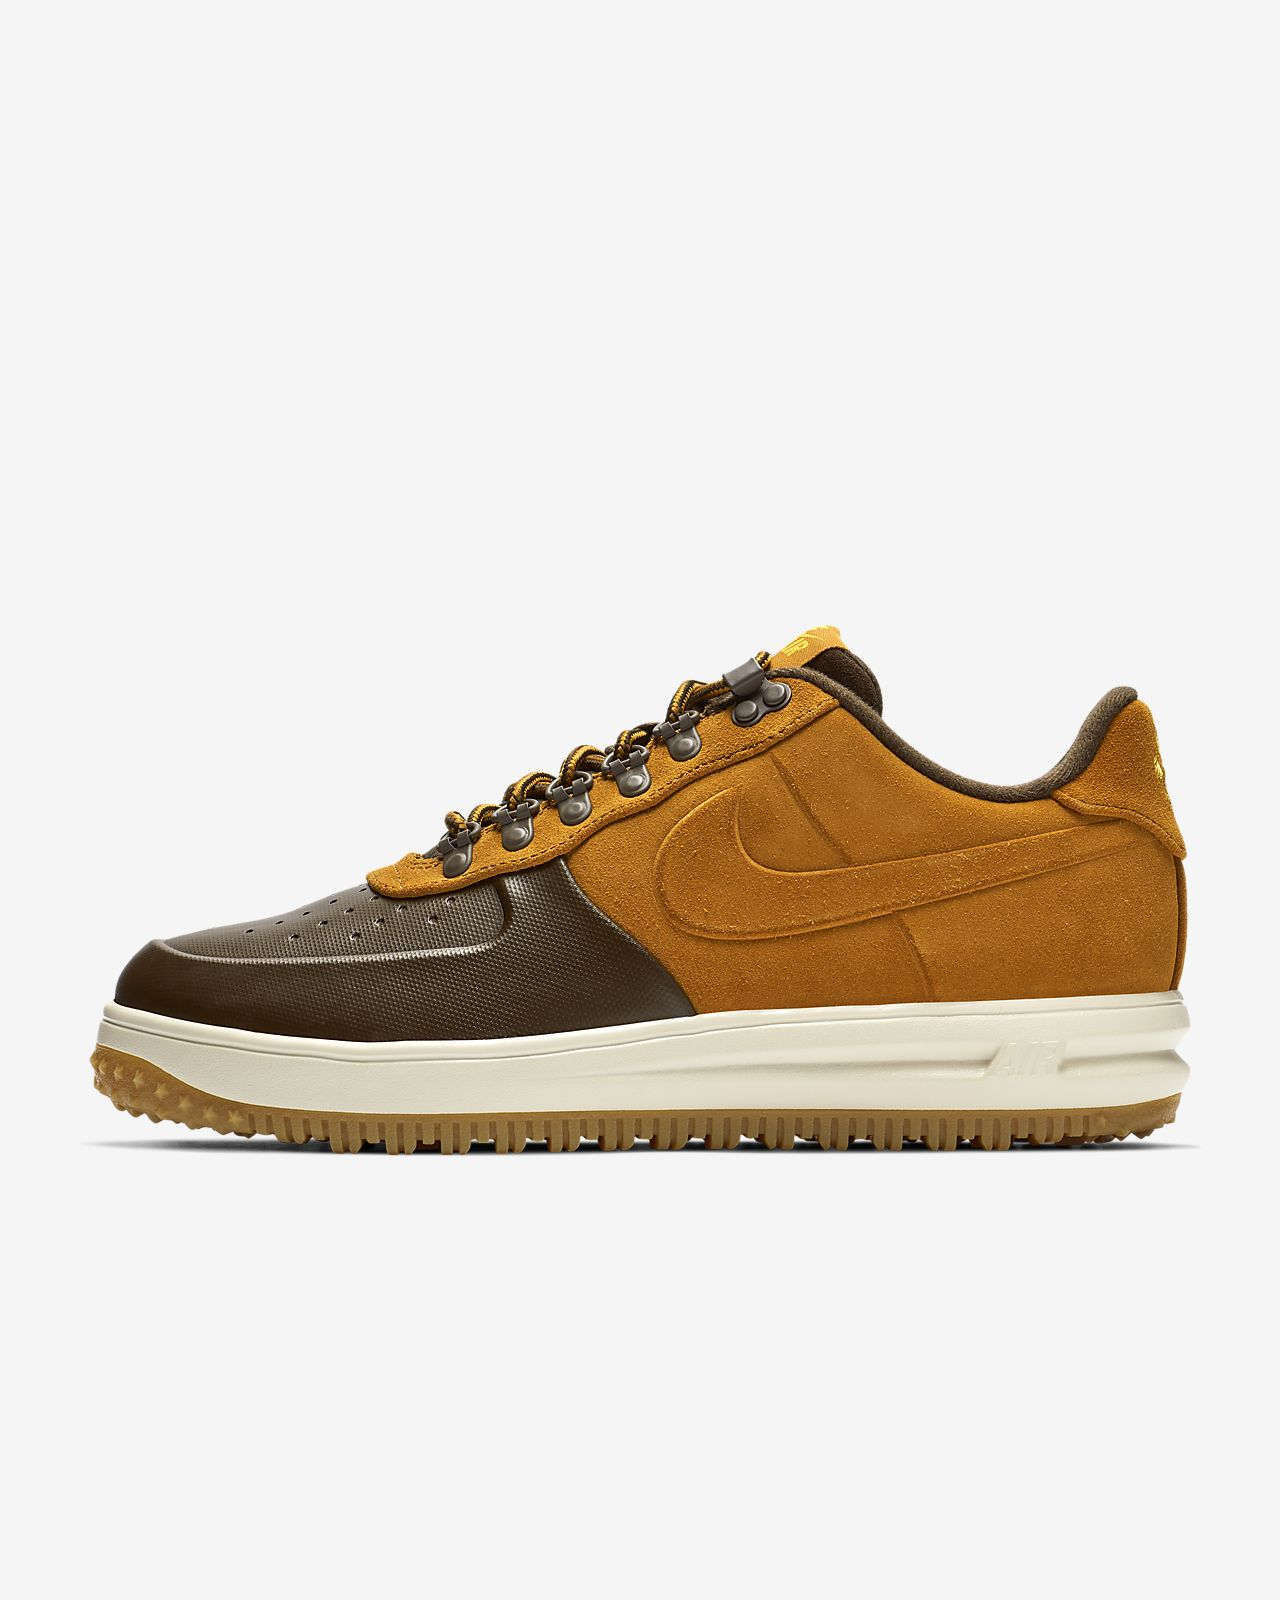 the latest 524dc bbb80 ... Nike Lunar Force 1 Duckboot Low Zapatillas - Hombre